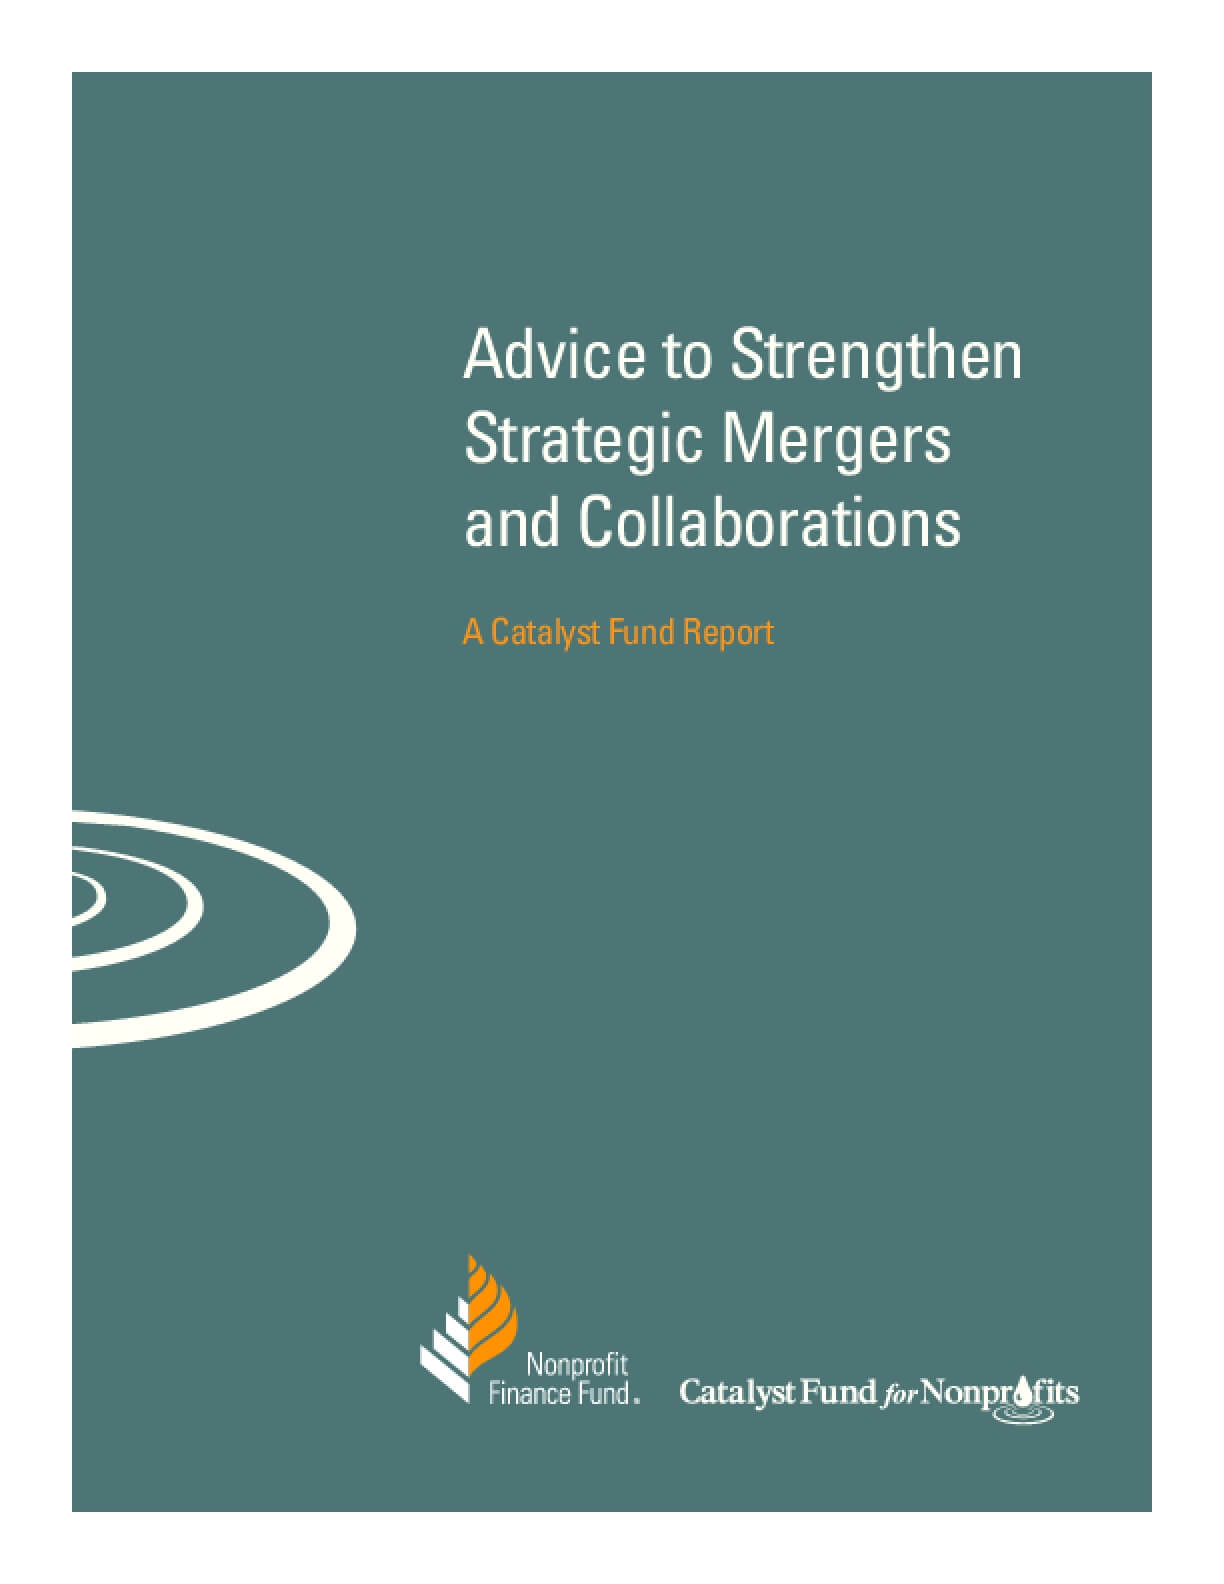 Advice to Strengthen Strategic Mergers and Collaborations: A Catalyst Fund Report